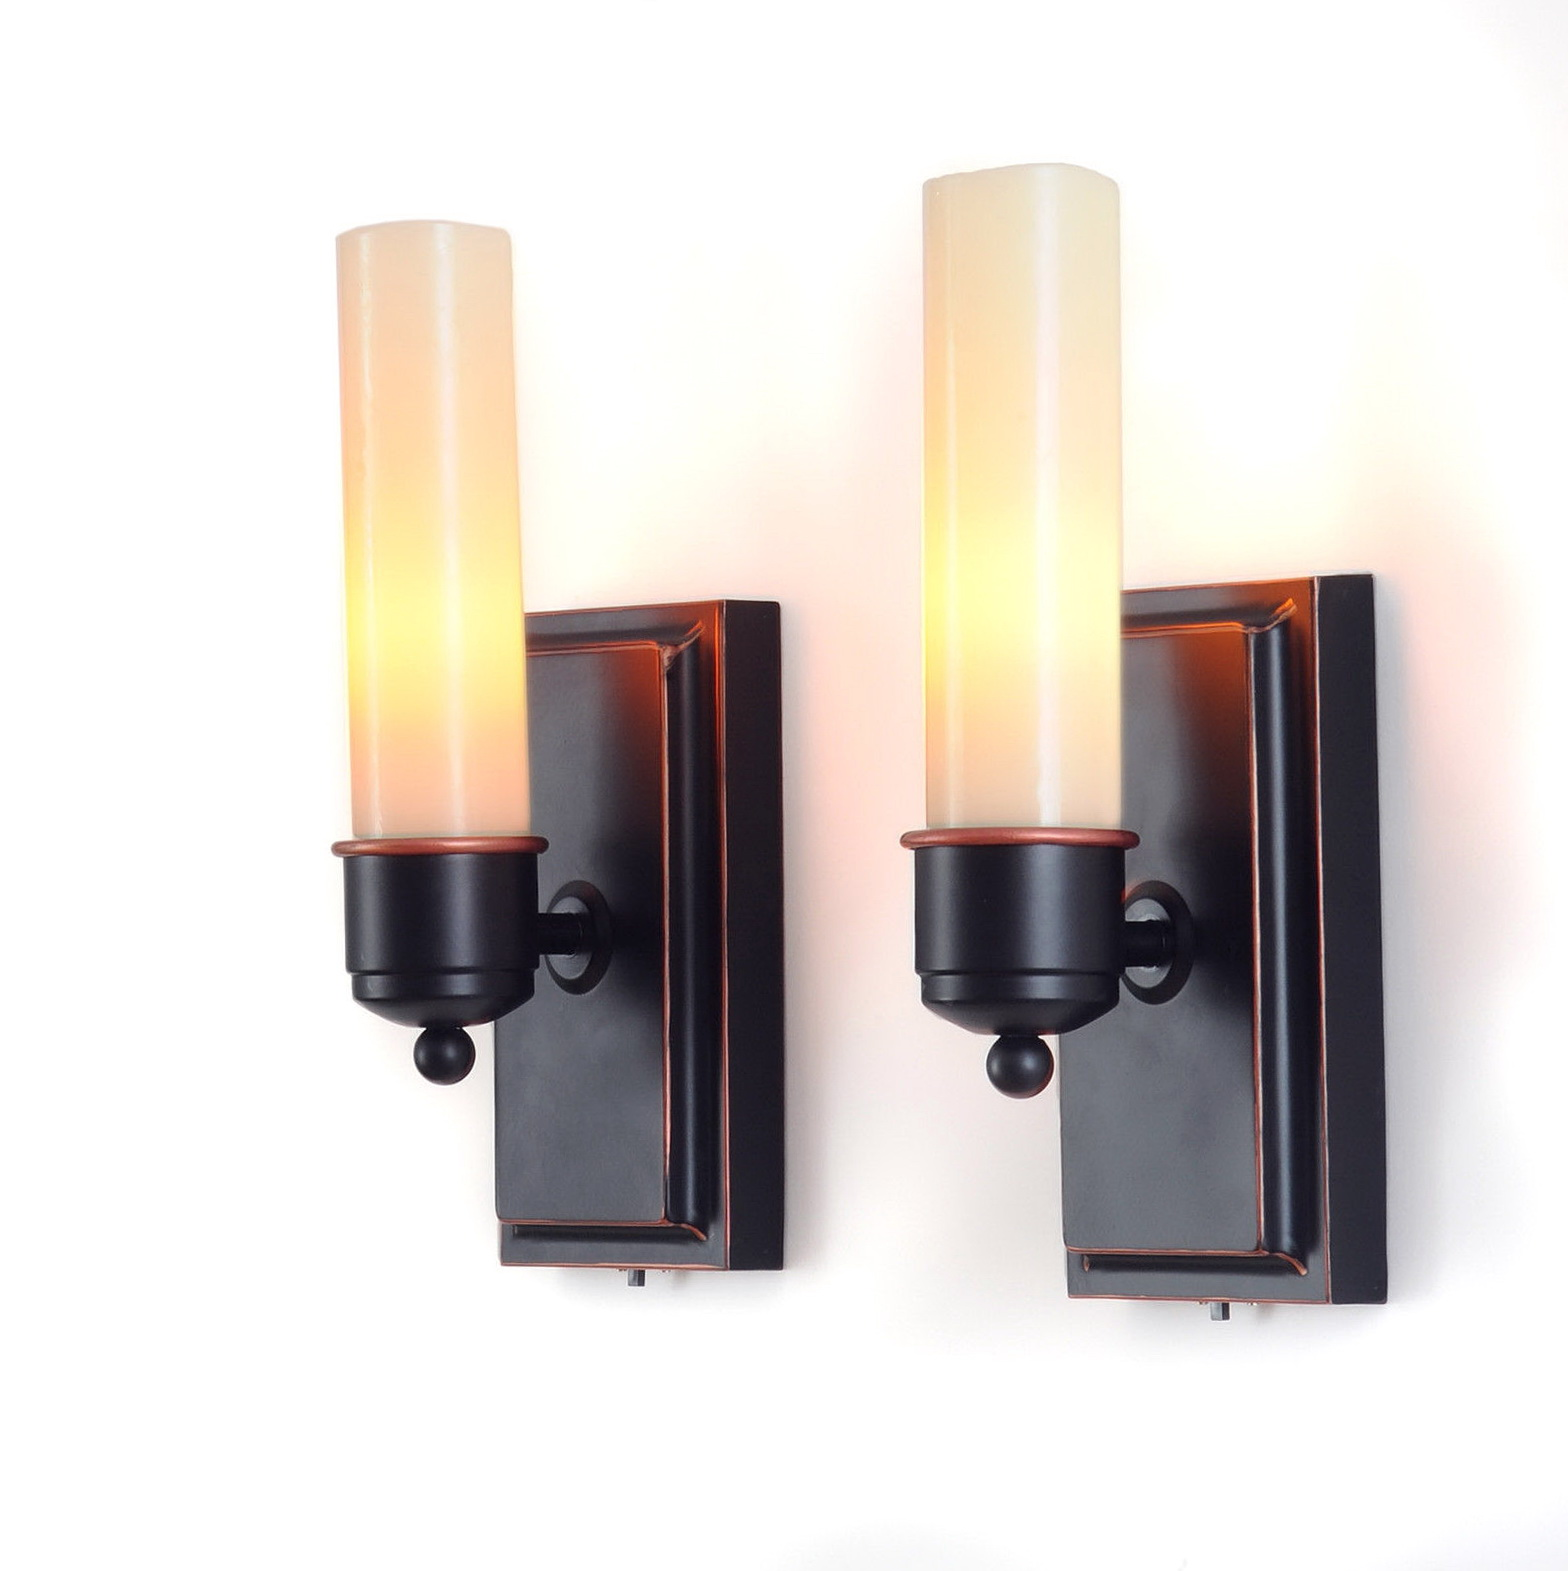 Stay ready with wall lights battery operated warisan lighting types of wall lights battery operated amipublicfo Gallery